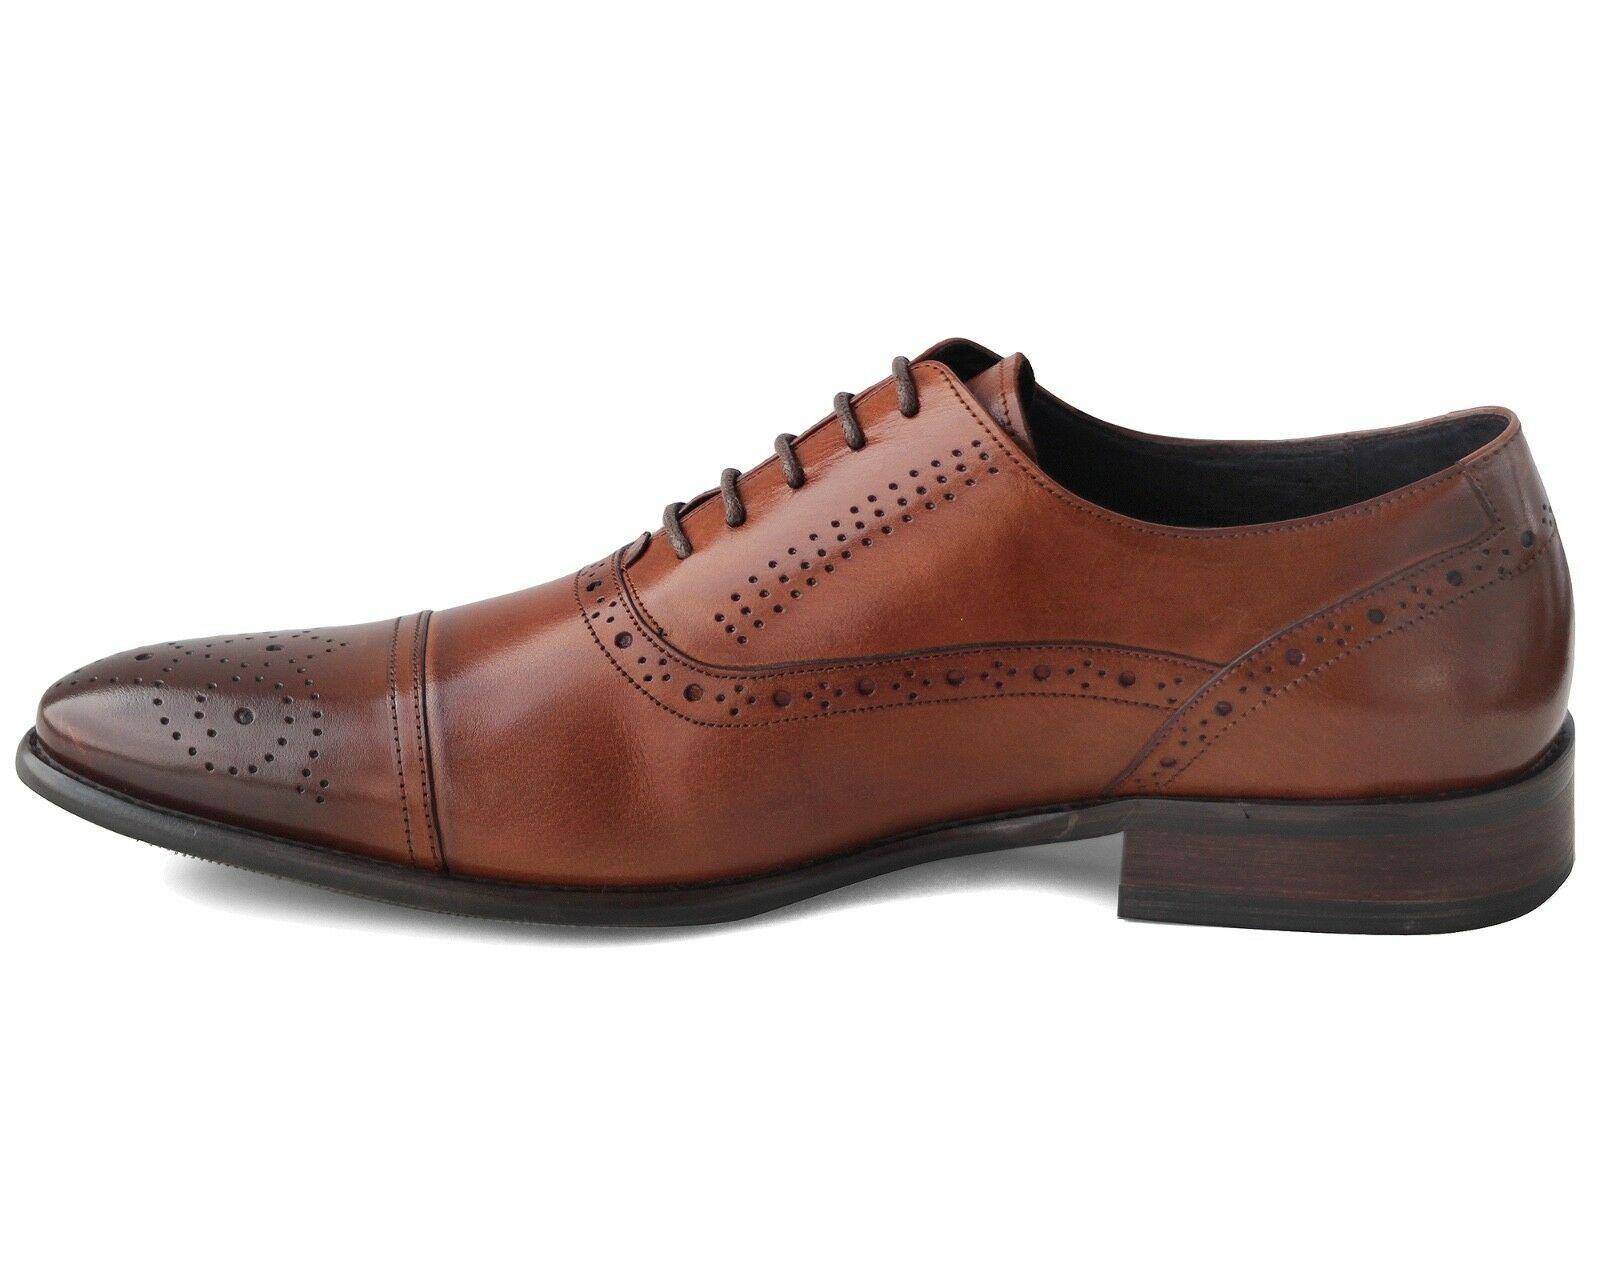 617 BRAND NEW MEN'S BROWN LEATHER SMART LACE UP Schuhe EU SIZE UK 9 / EU Schuhe 43 a8dfbe